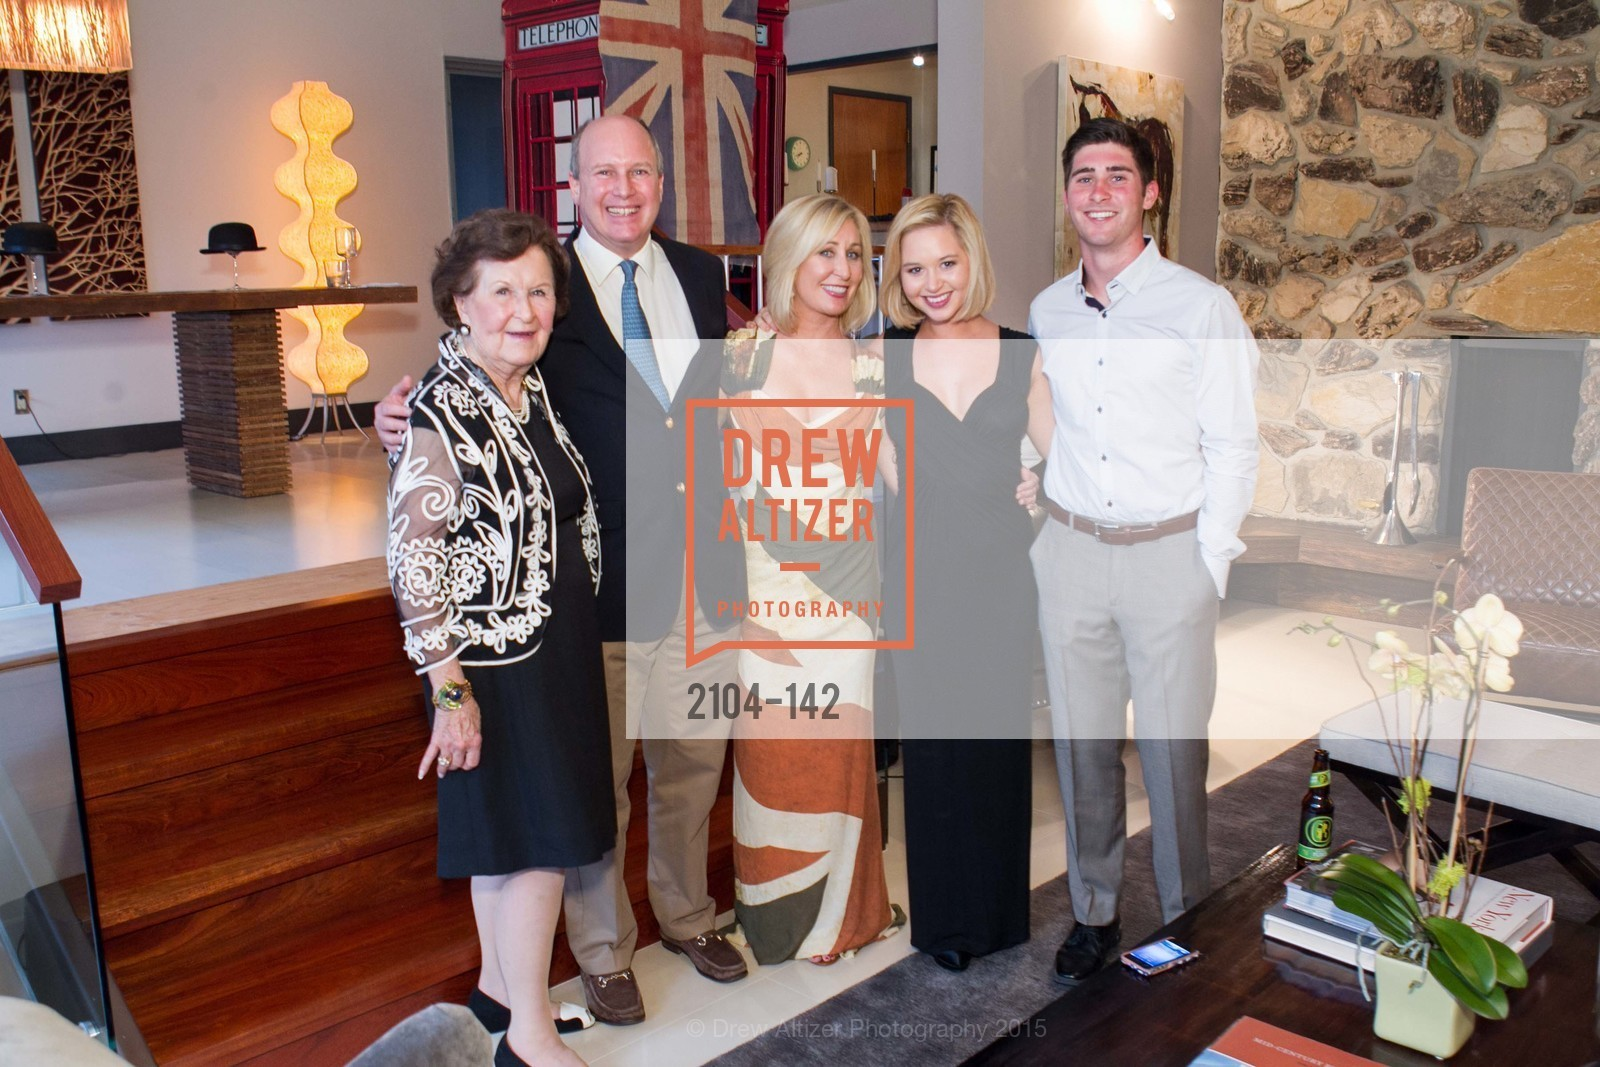 Suzanne Keith, Randolph Churchill, Lisa Keith Madeleine Gerhart, Mark Gerhart, THE MAN WITHIN book launch with Randolph Churchill, Private Residence, June 2nd, 2015,Drew Altizer, Drew Altizer Photography, full-service agency, private events, San Francisco photographer, photographer california